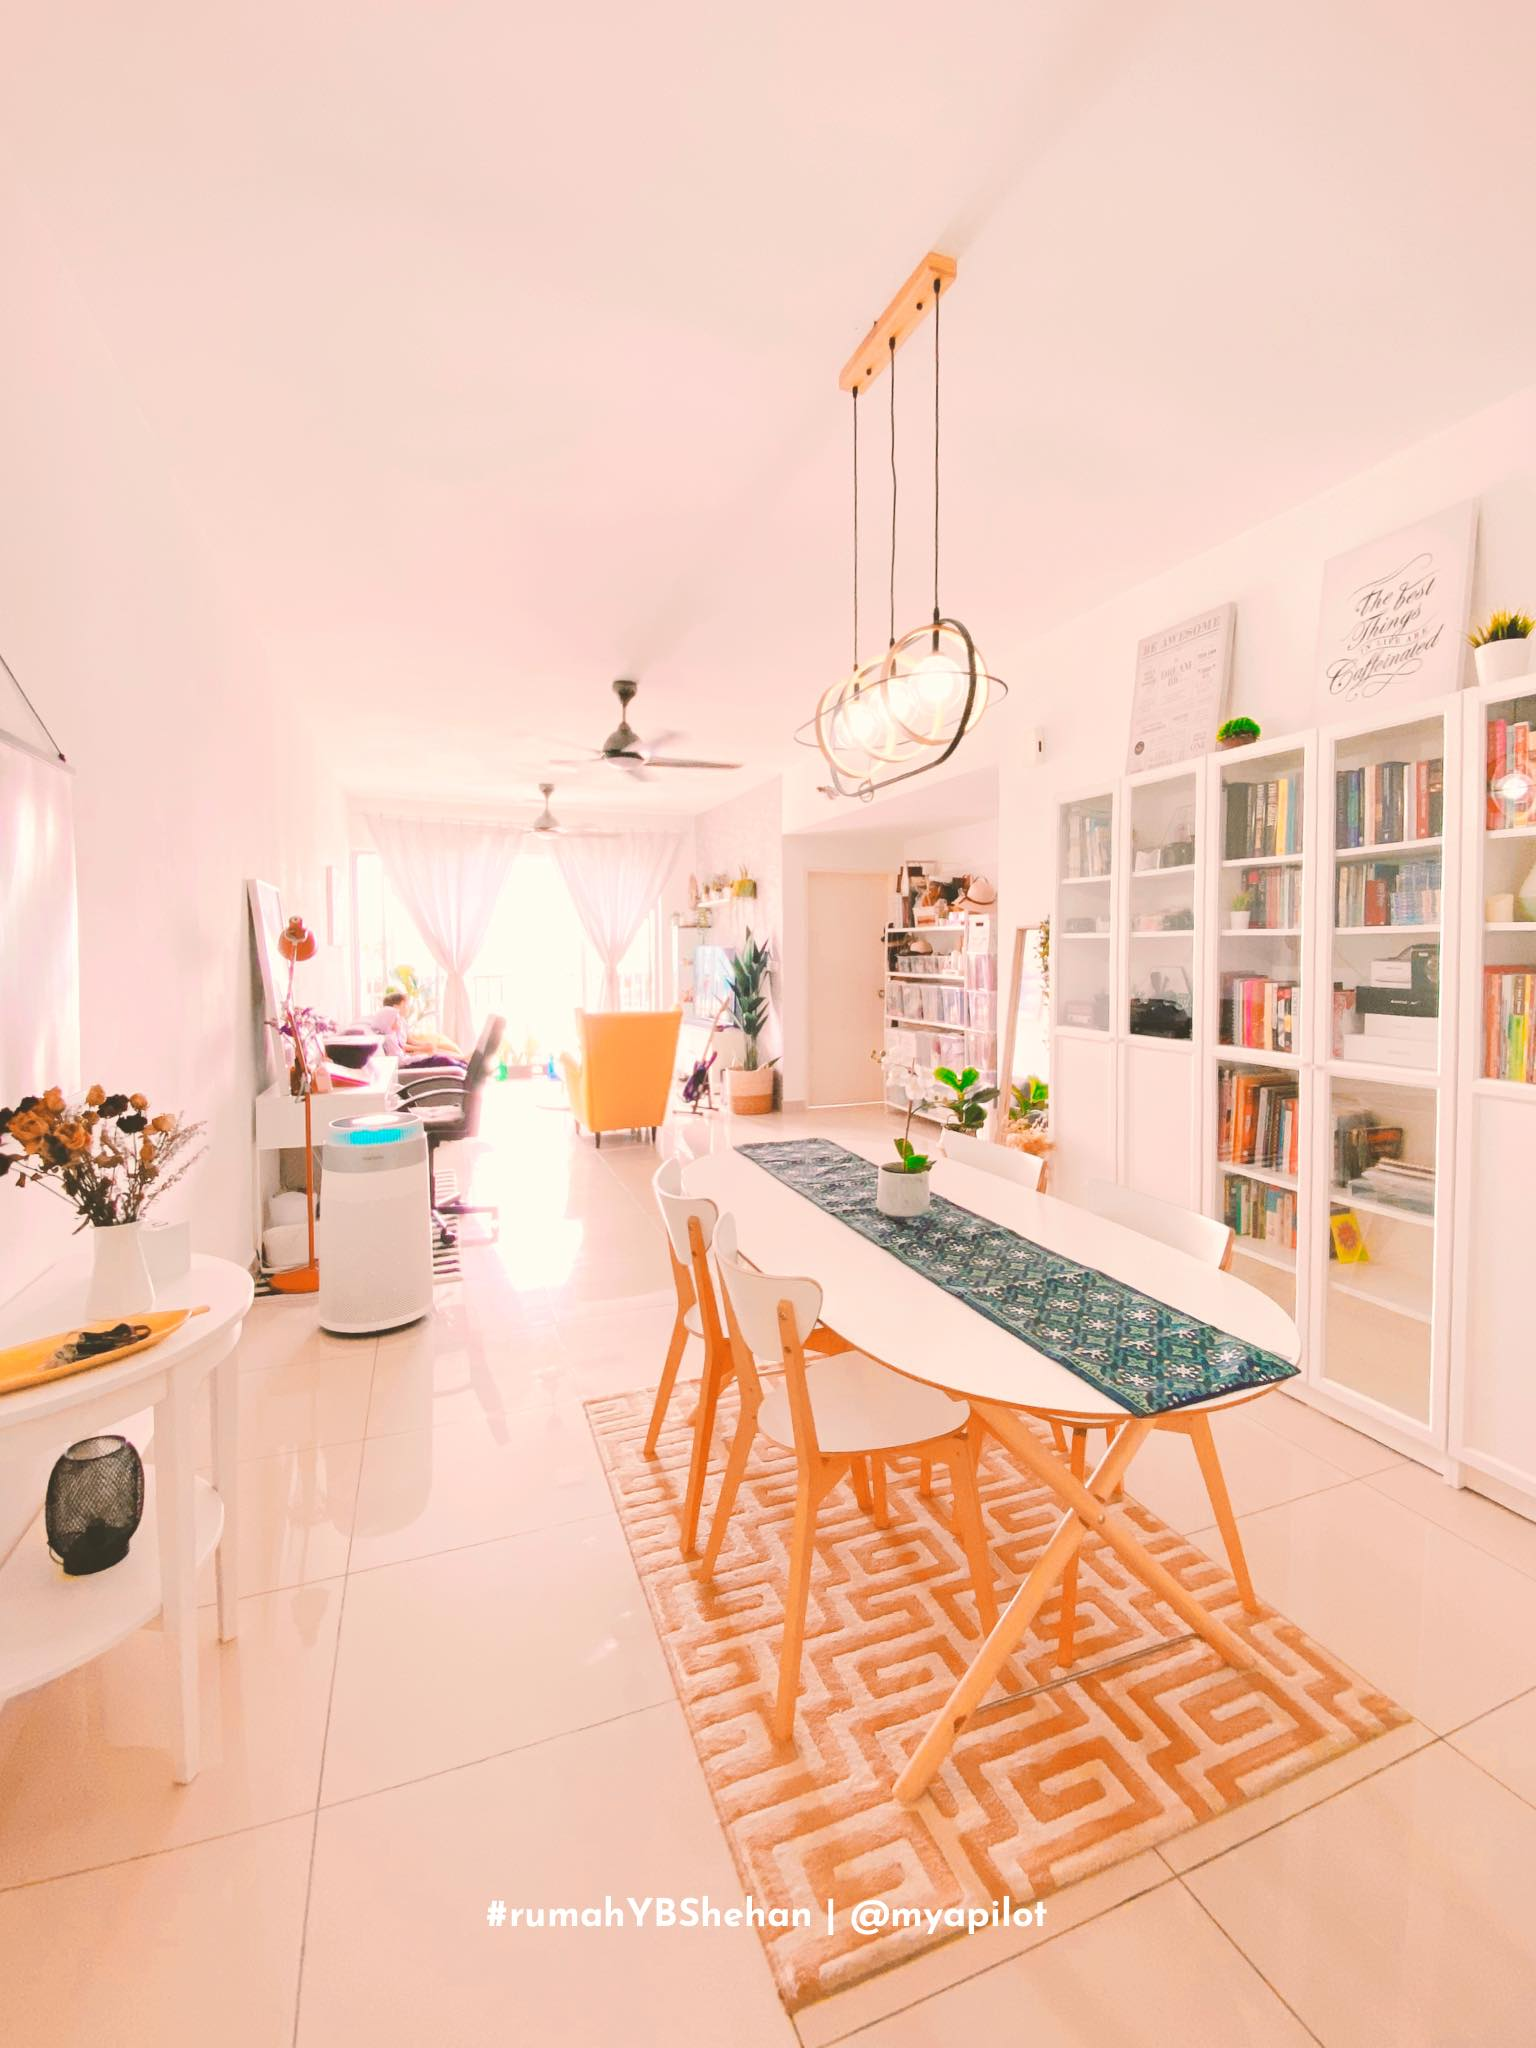 DEKORASI SIMPLE RUMAH APARTMENT #rumahYBShehan